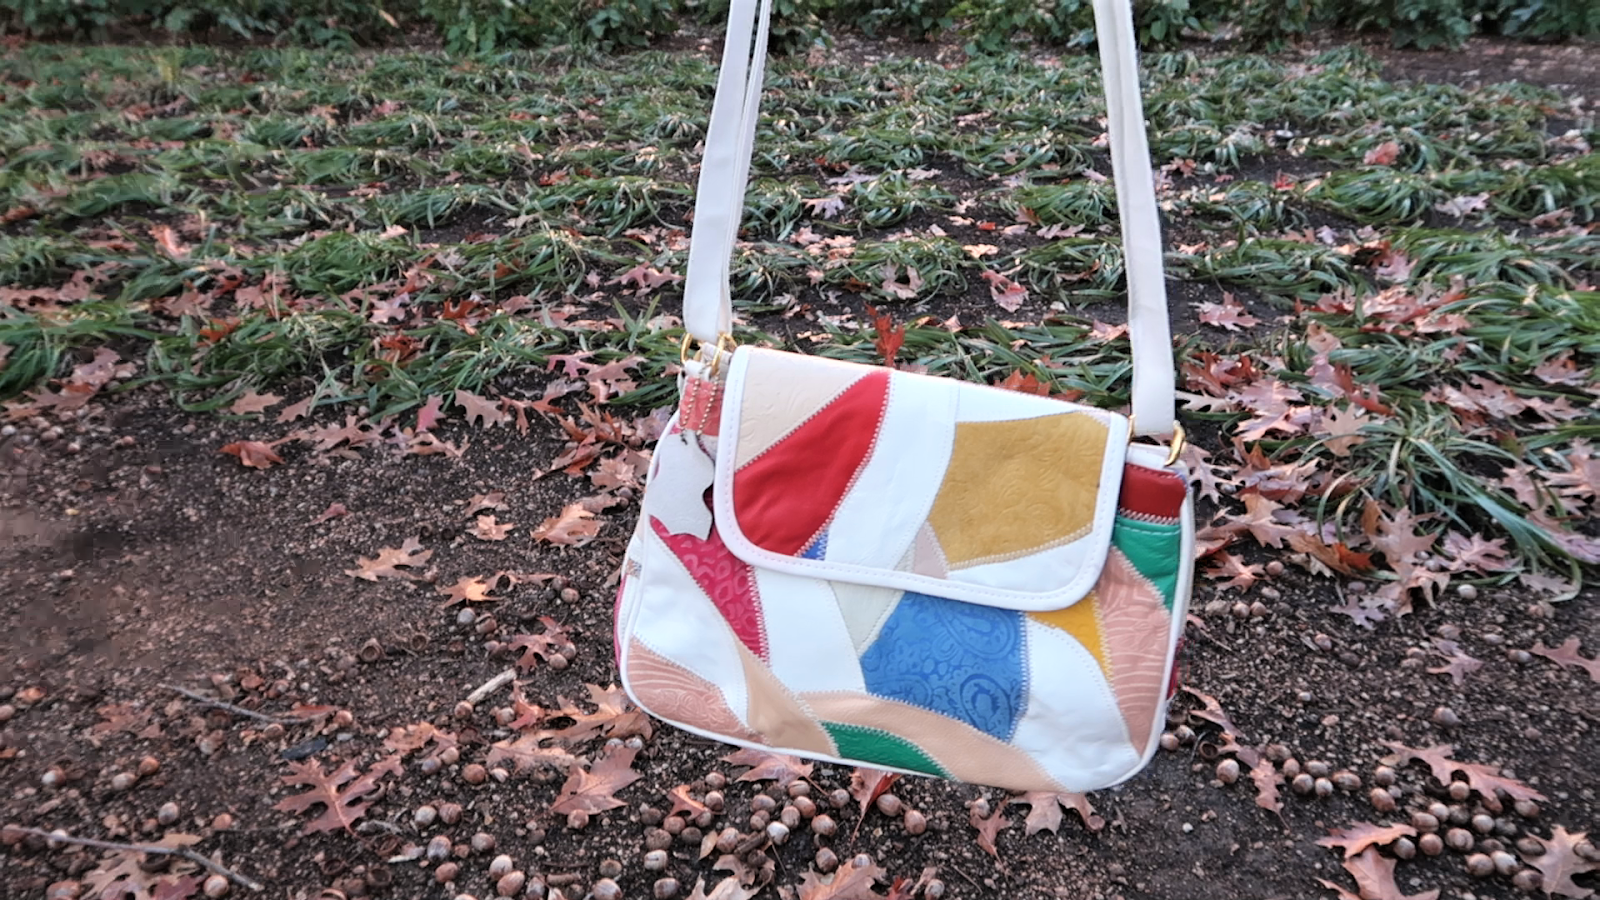 Mod White Patch Purse. Thrift Snooping Thrift with me day